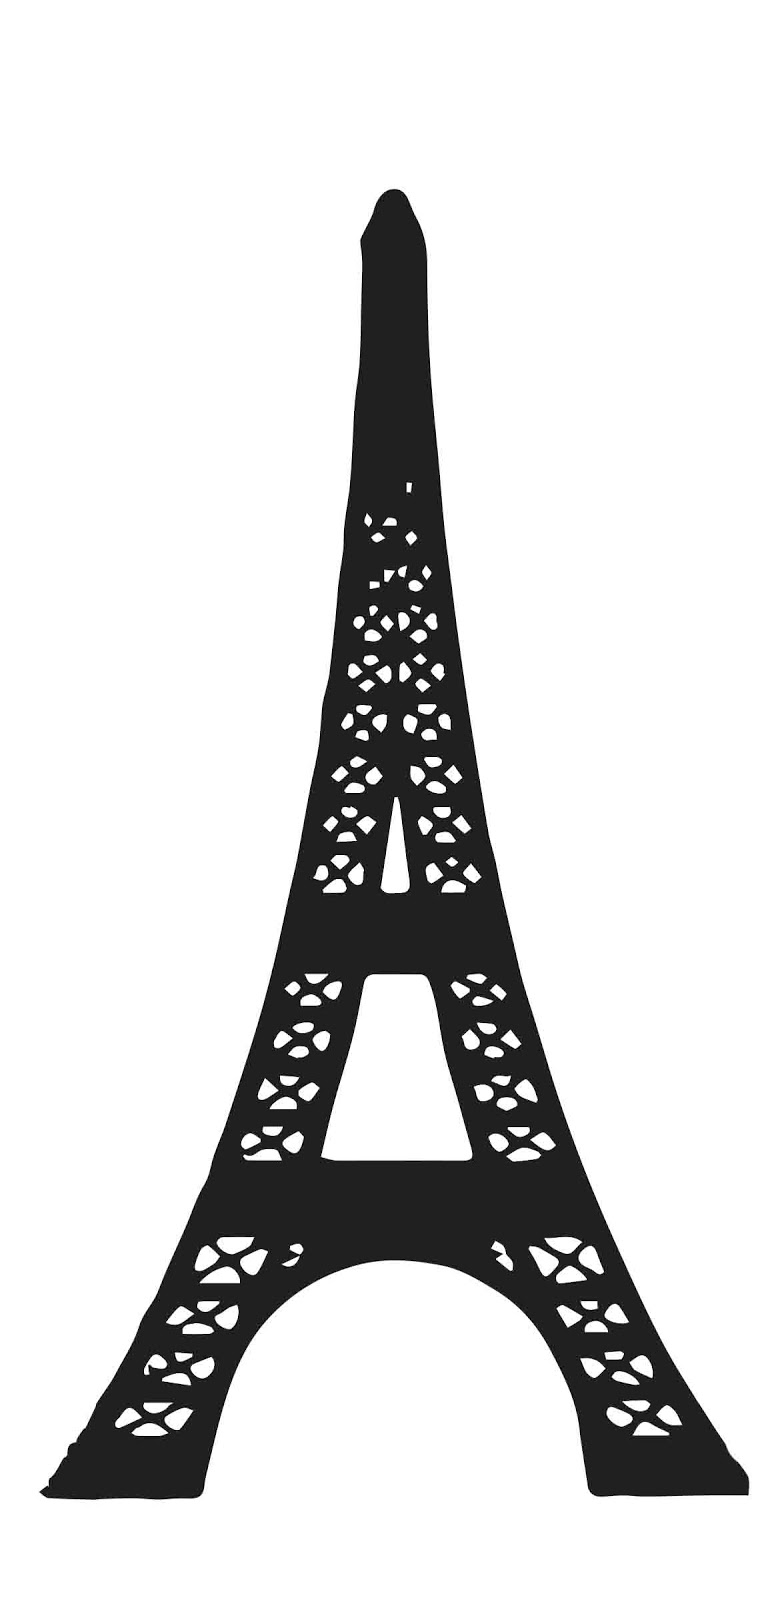 Gonna stuff a chicken project gingerbread eiffel tower for Eiffel tower model template